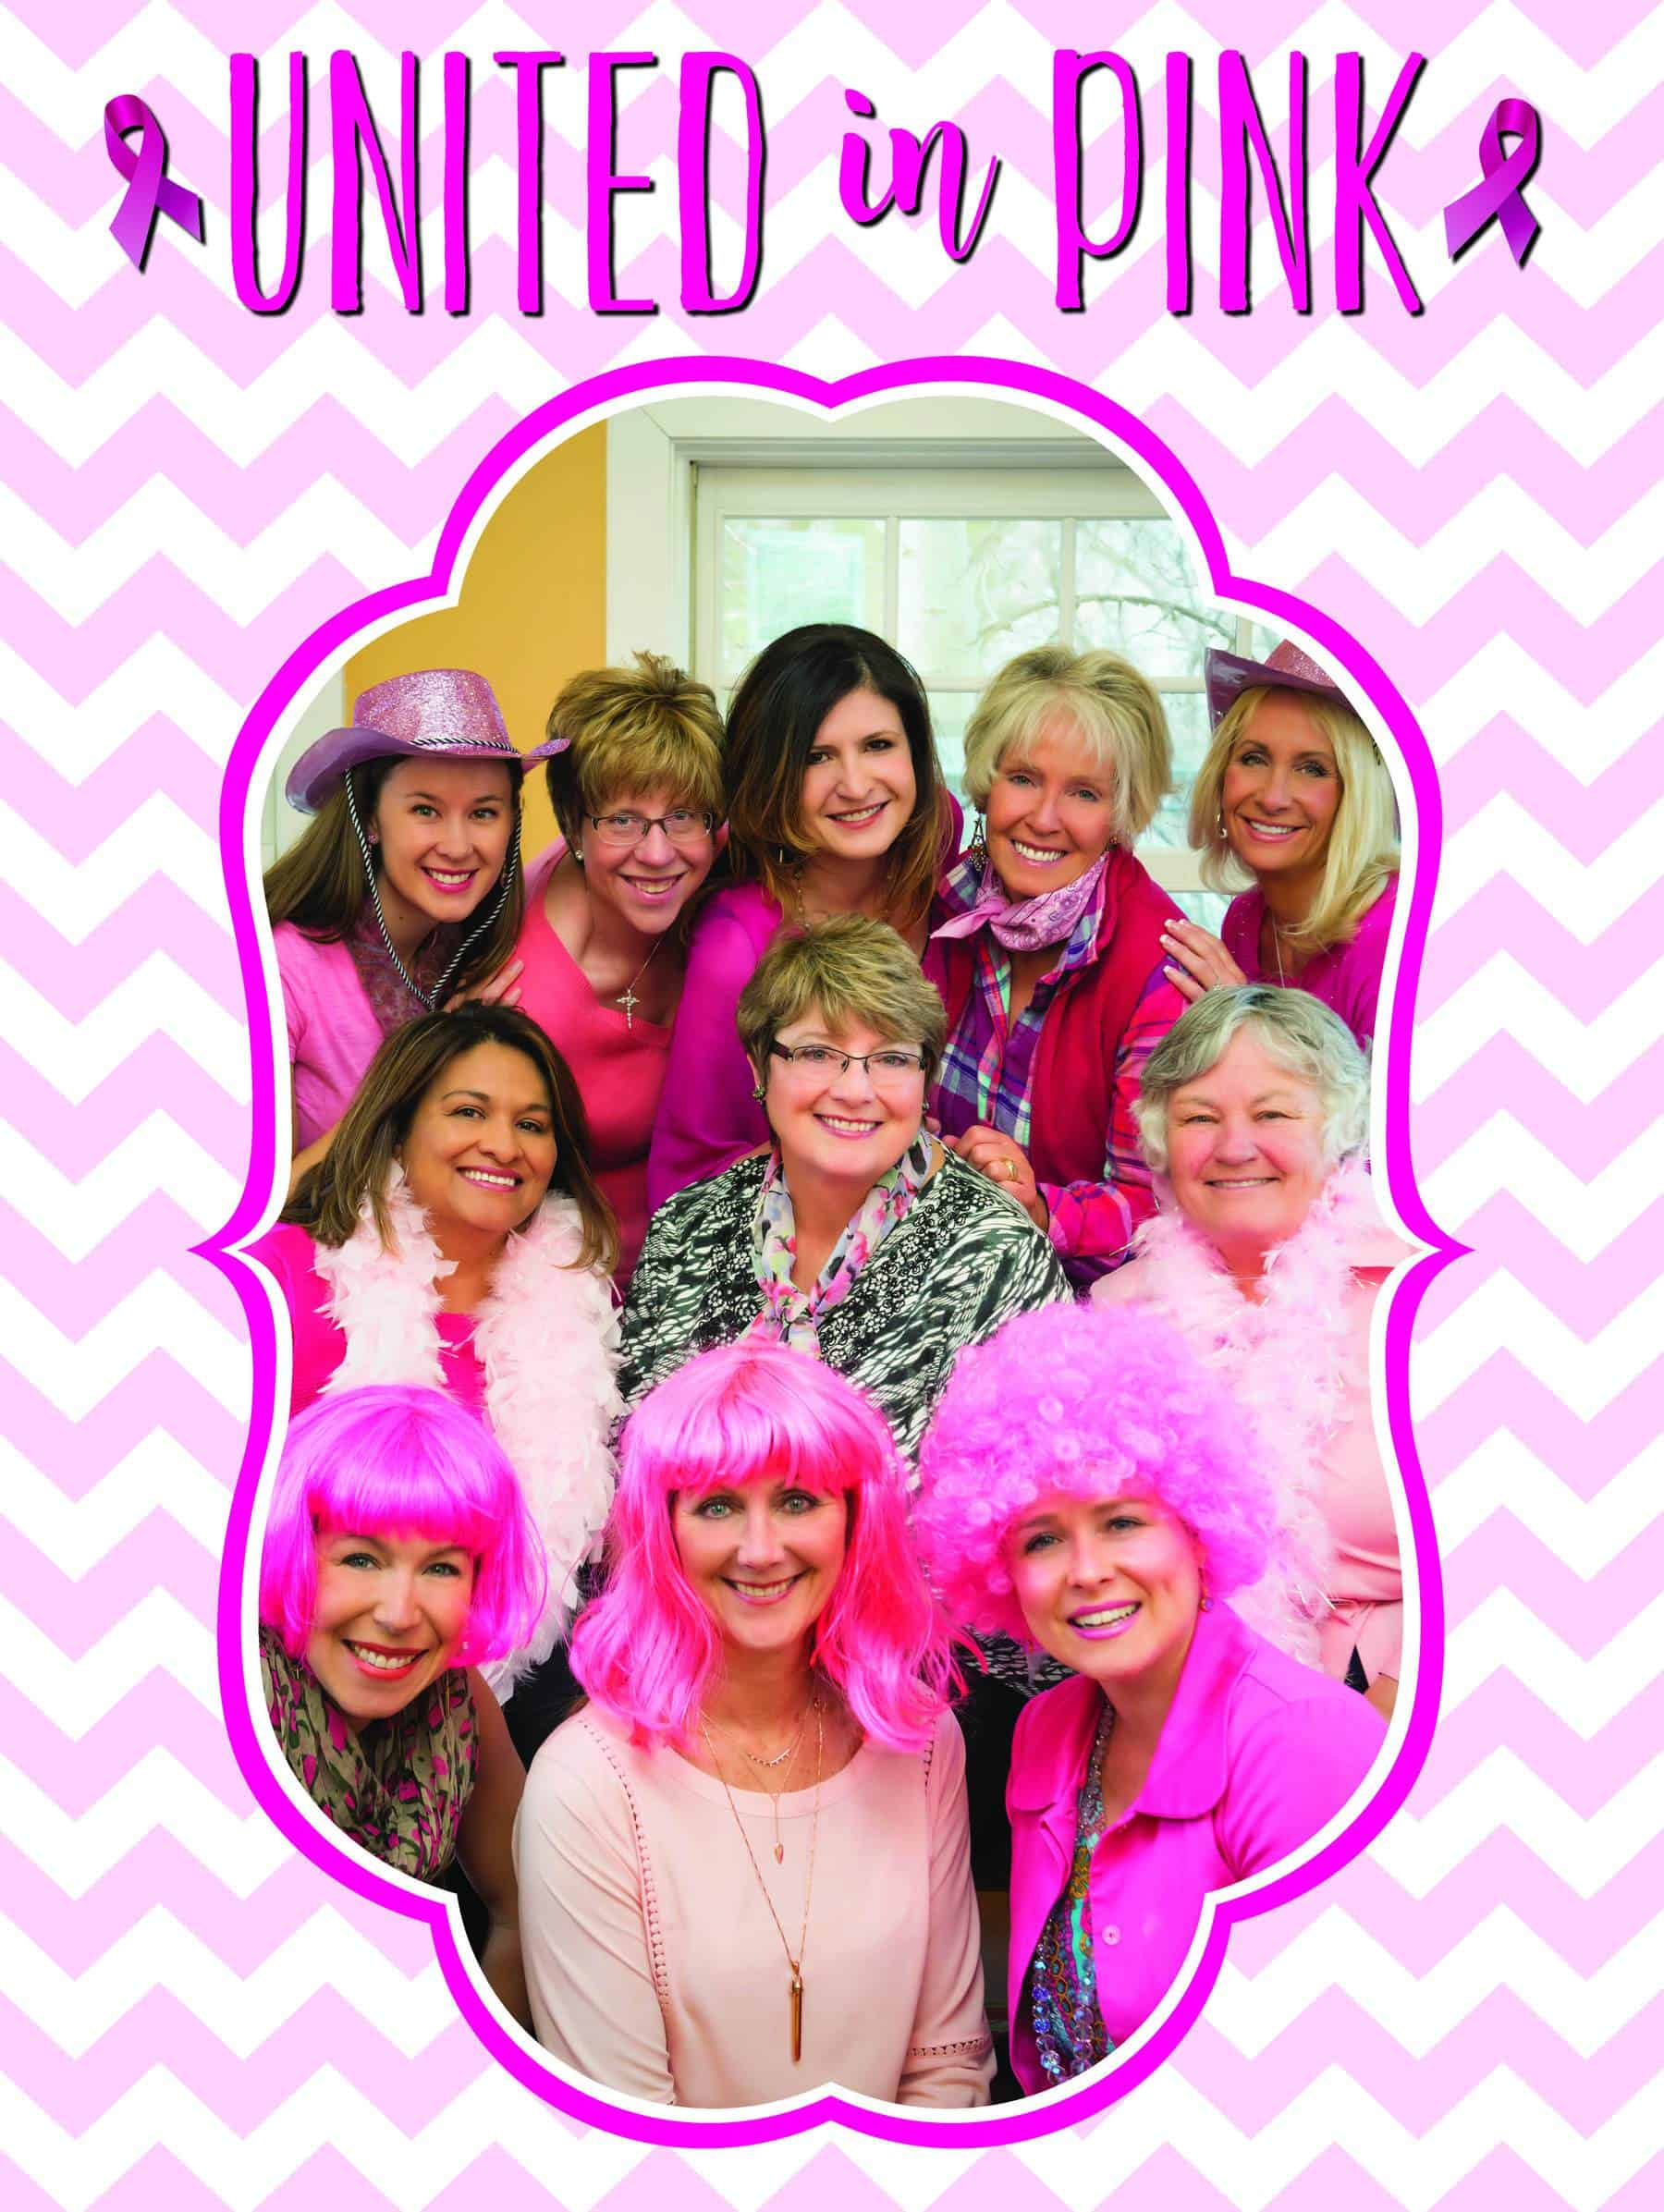 united-in-pink-poster-2016